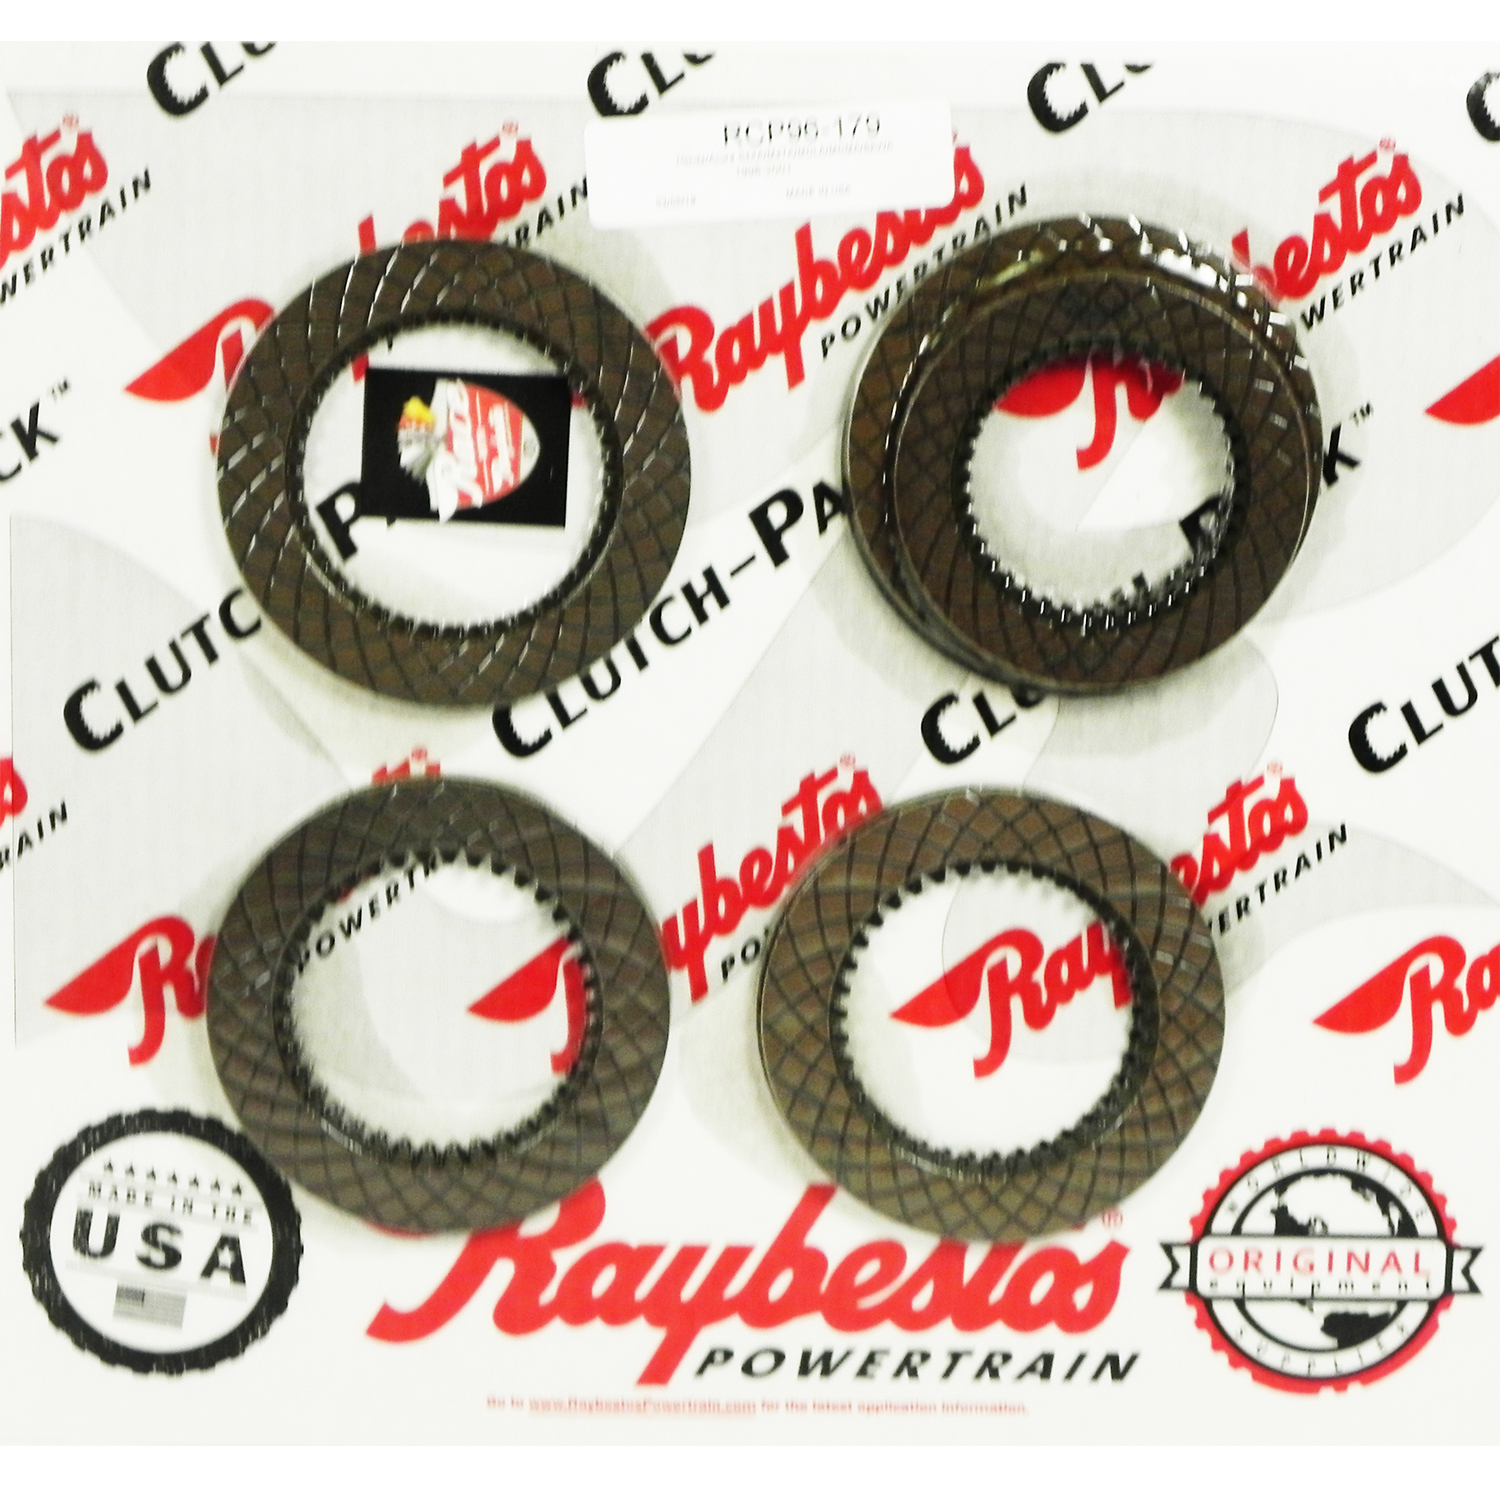 S4XA, M4TA, MDLA, MDMA, SKWA GPX Friction Clutch Pack